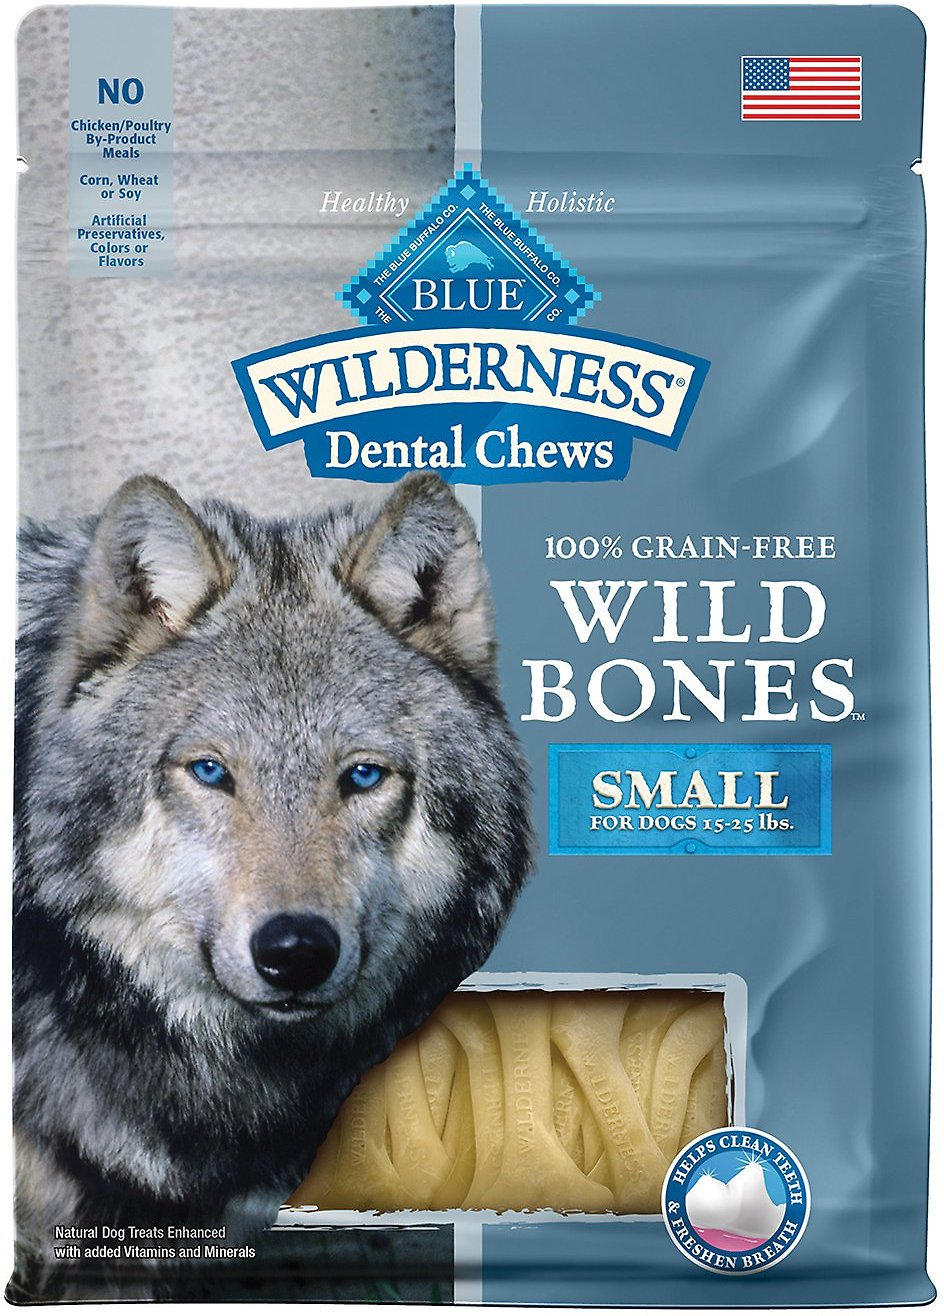 Blue Buffalo Wilderness Wild Bones Small Dental Chews Grain-Free Dog Treats, 10-oz bag